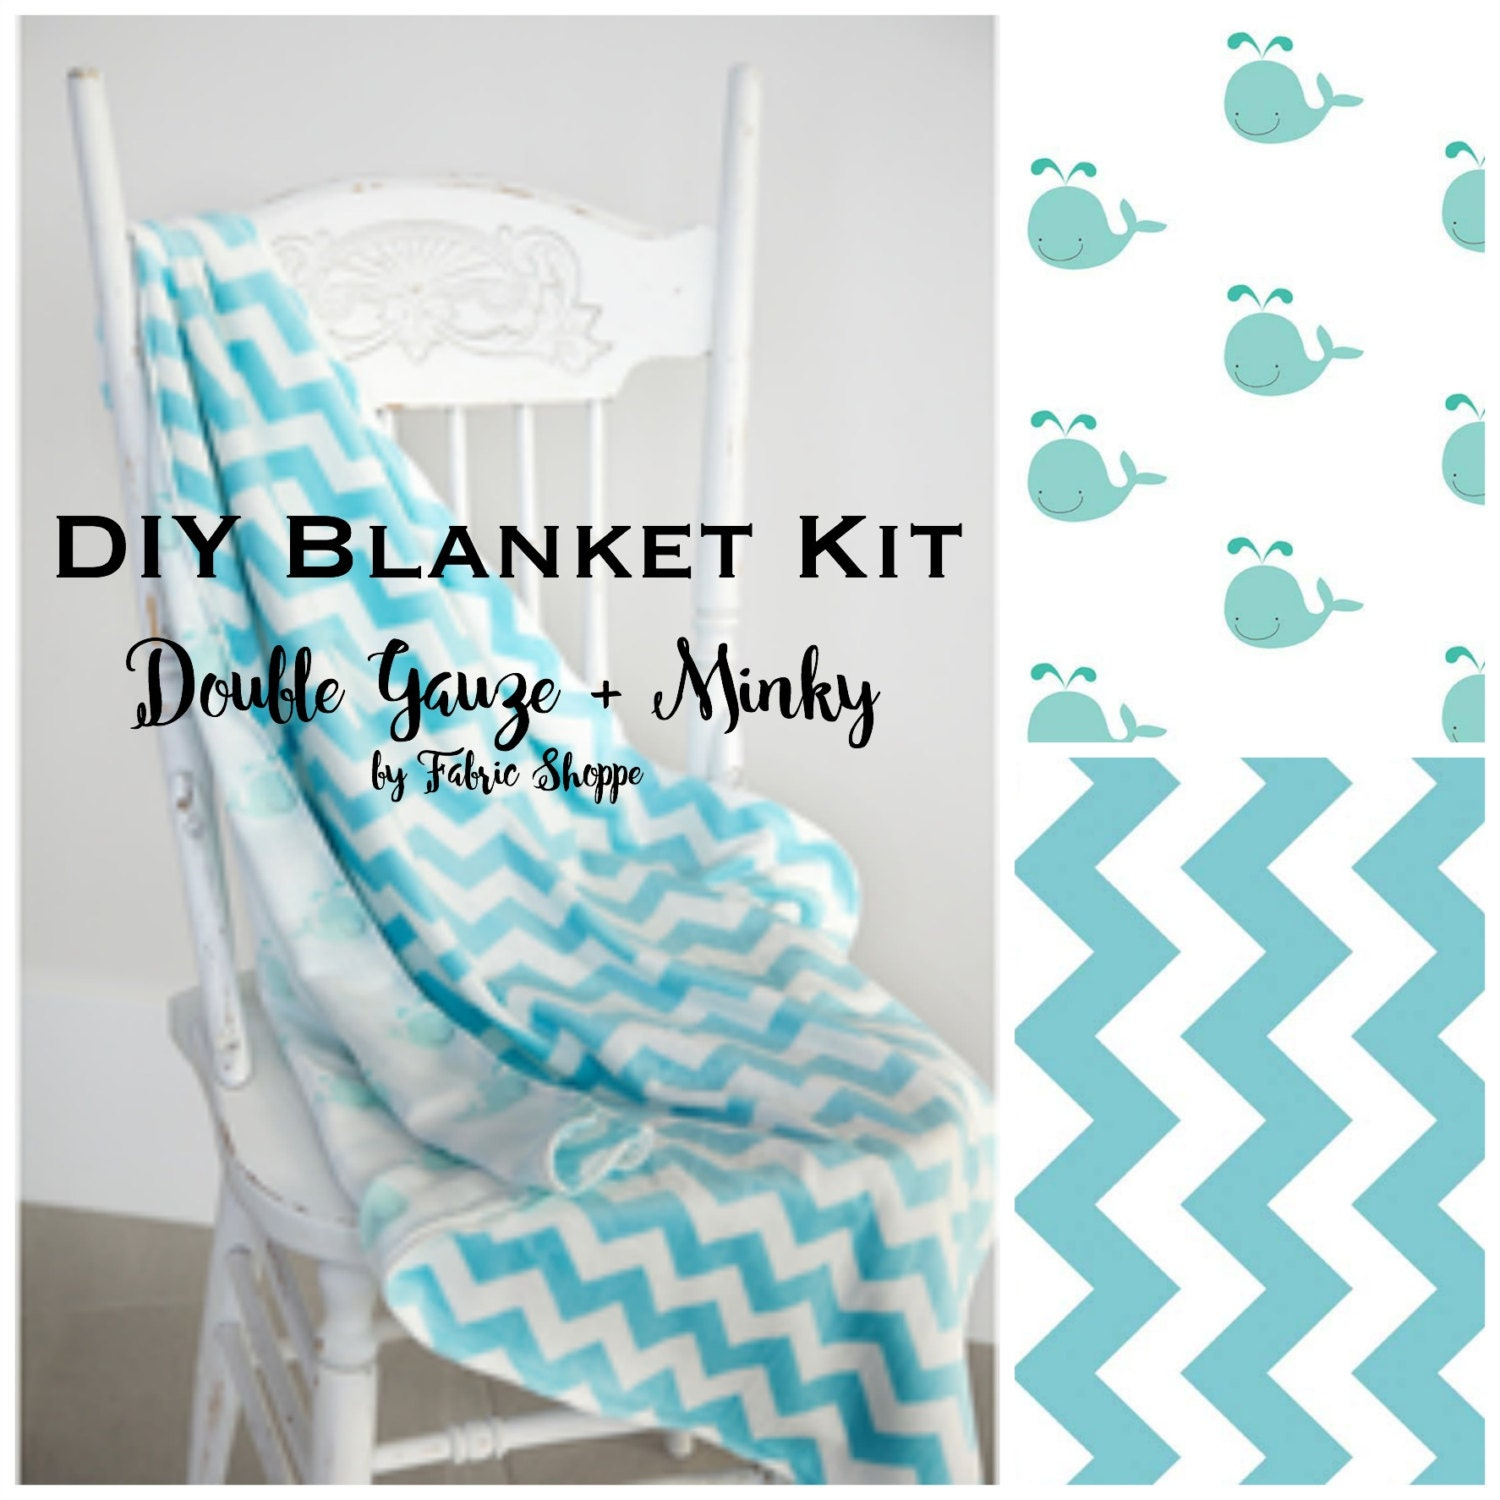 Diy quilt kit baby boy quilt baby blanket kit double gauze diy quilt kit baby boy quilt baby blanket kit double gauze fabric whale fabric chevron baby fabric baby gift make it yourself solutioingenieria